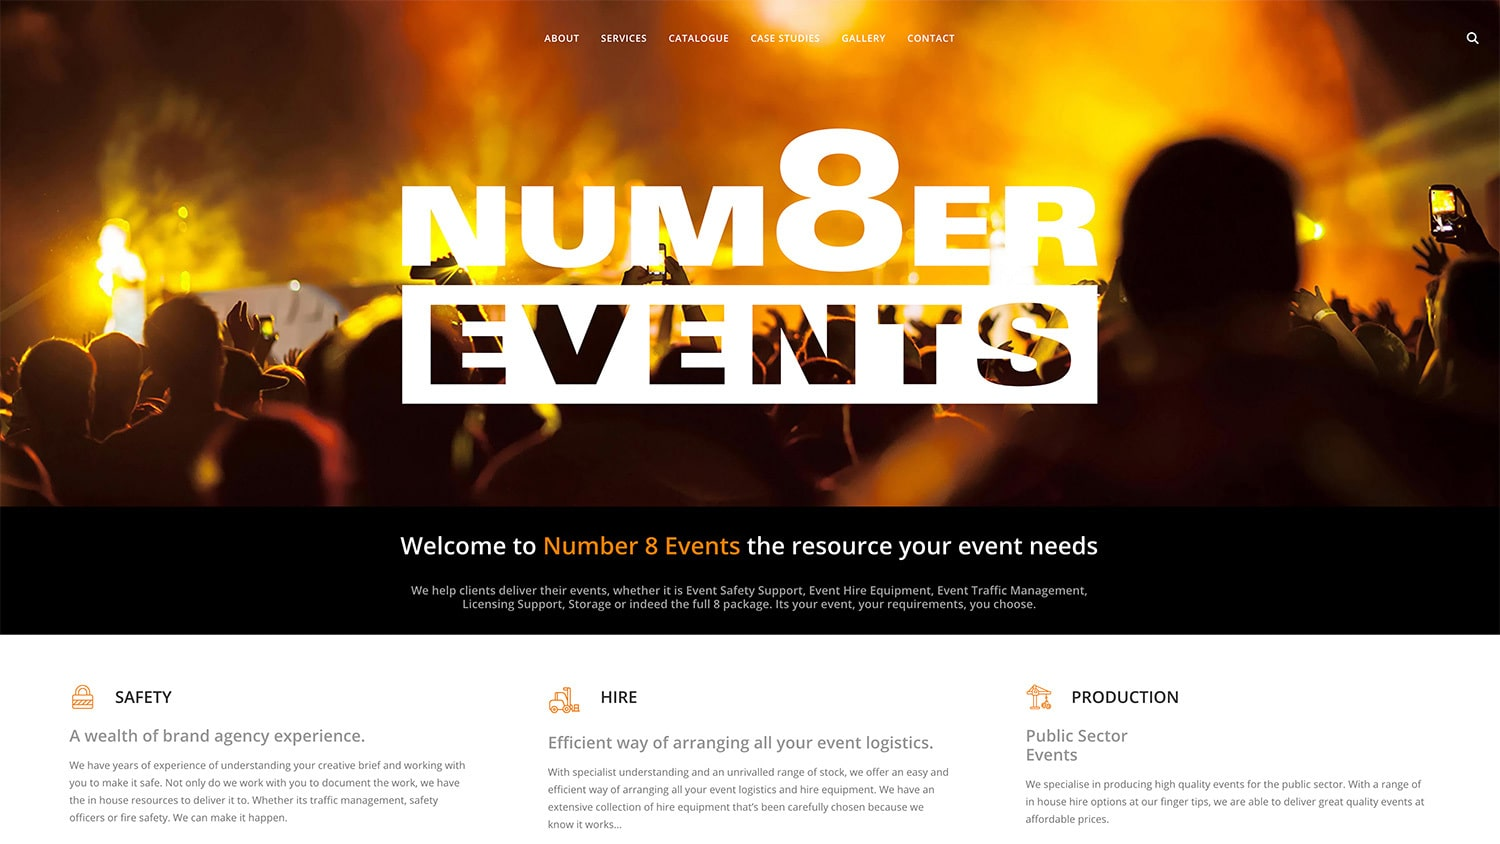 Homepage flat of Number 8 Events website design